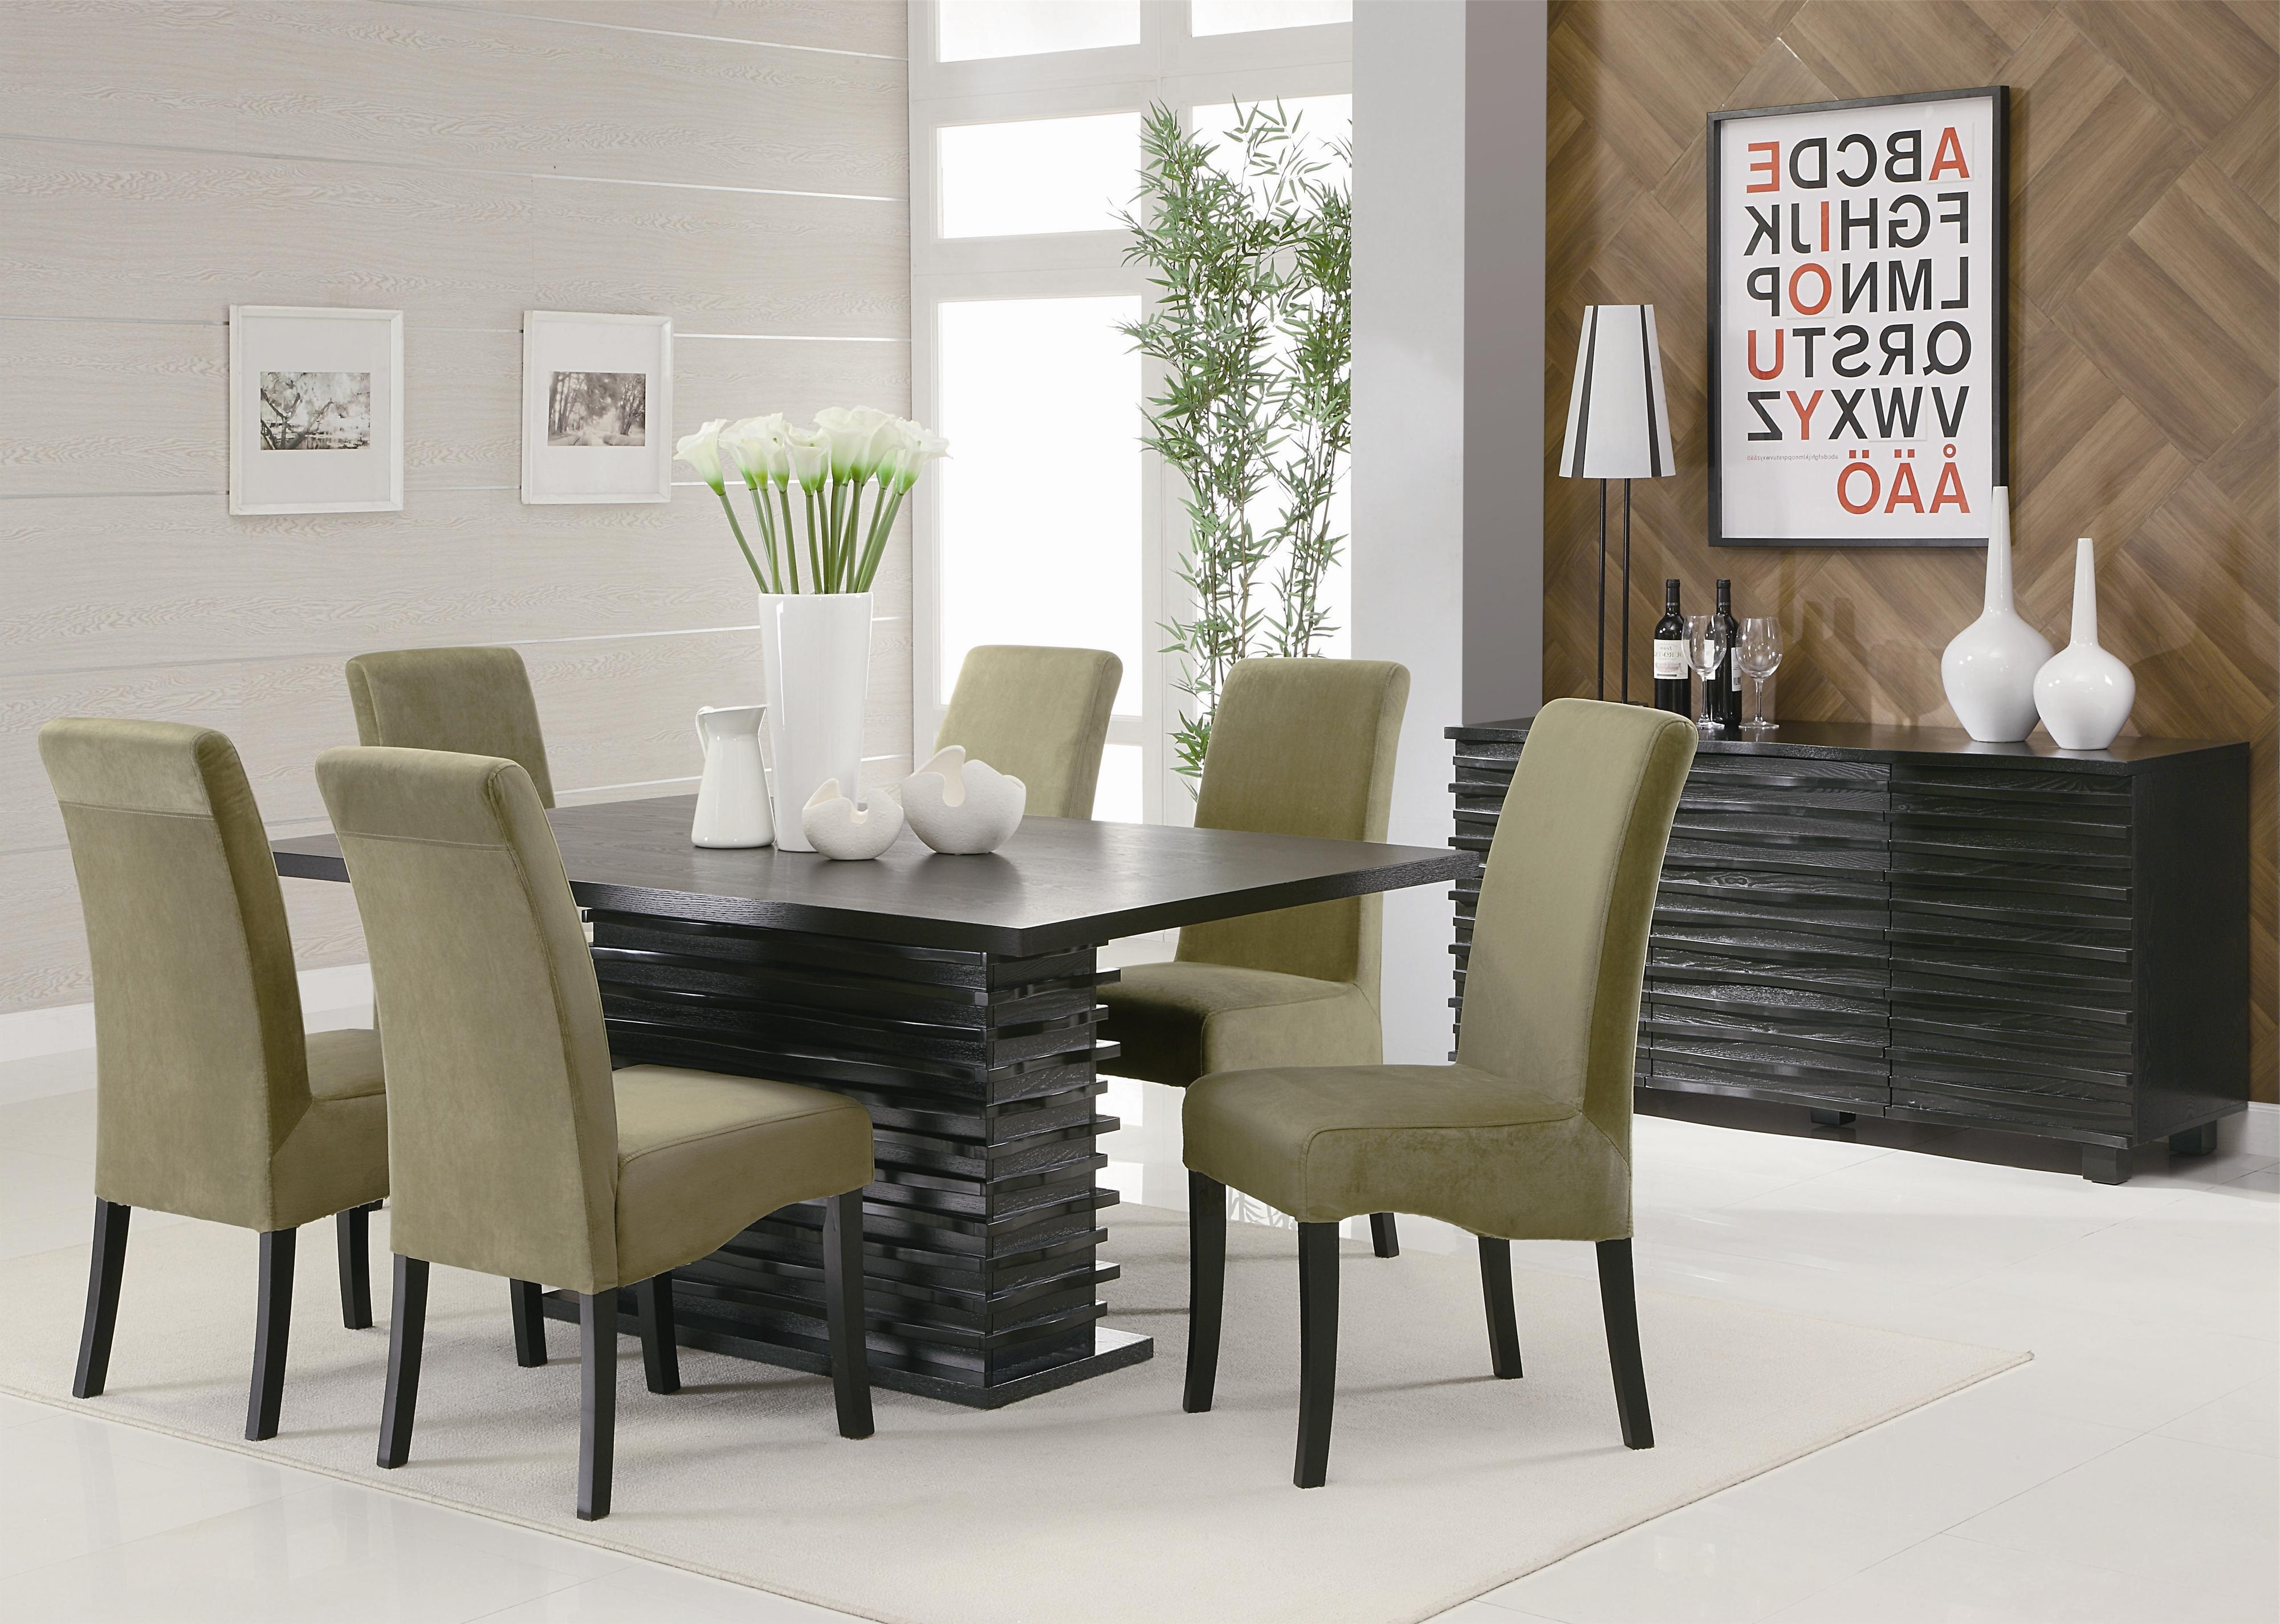 Coaster Stanton Contemporary Dining Table – Coaster Fine Furniture Regarding Most Recently Released Contemporary Dining Room Tables And Chairs (View 13 of 25)